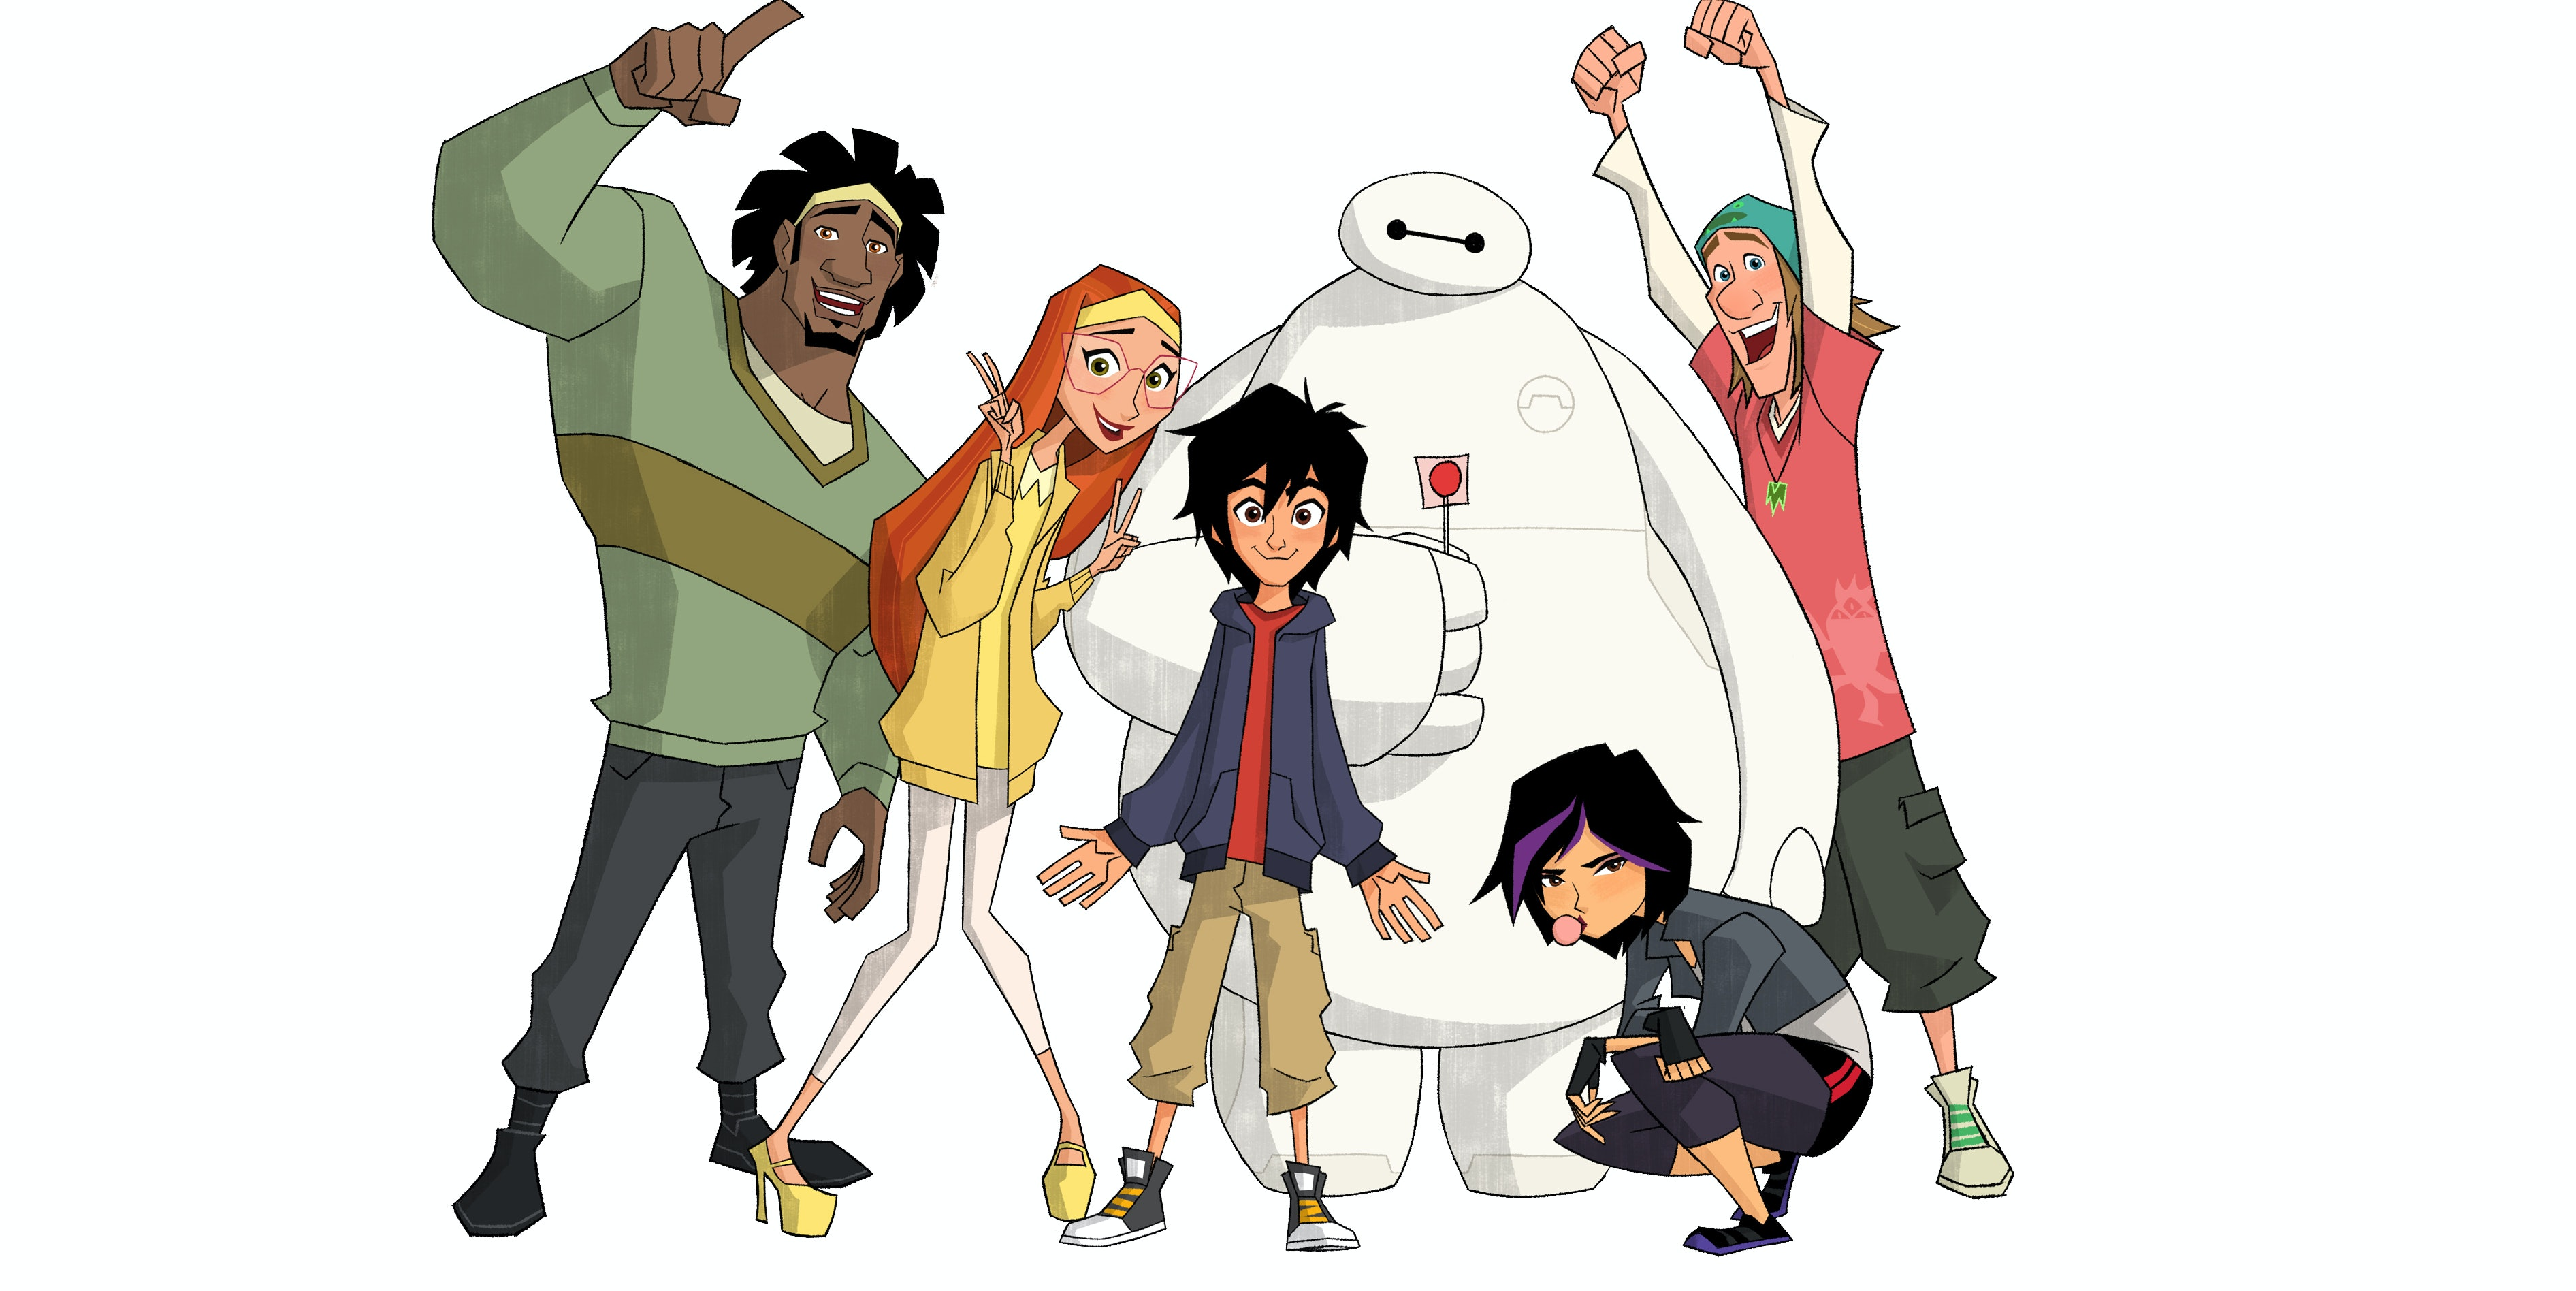 Disney Already Ordered Season 2 of Its 'Big Hero 6' TV Show